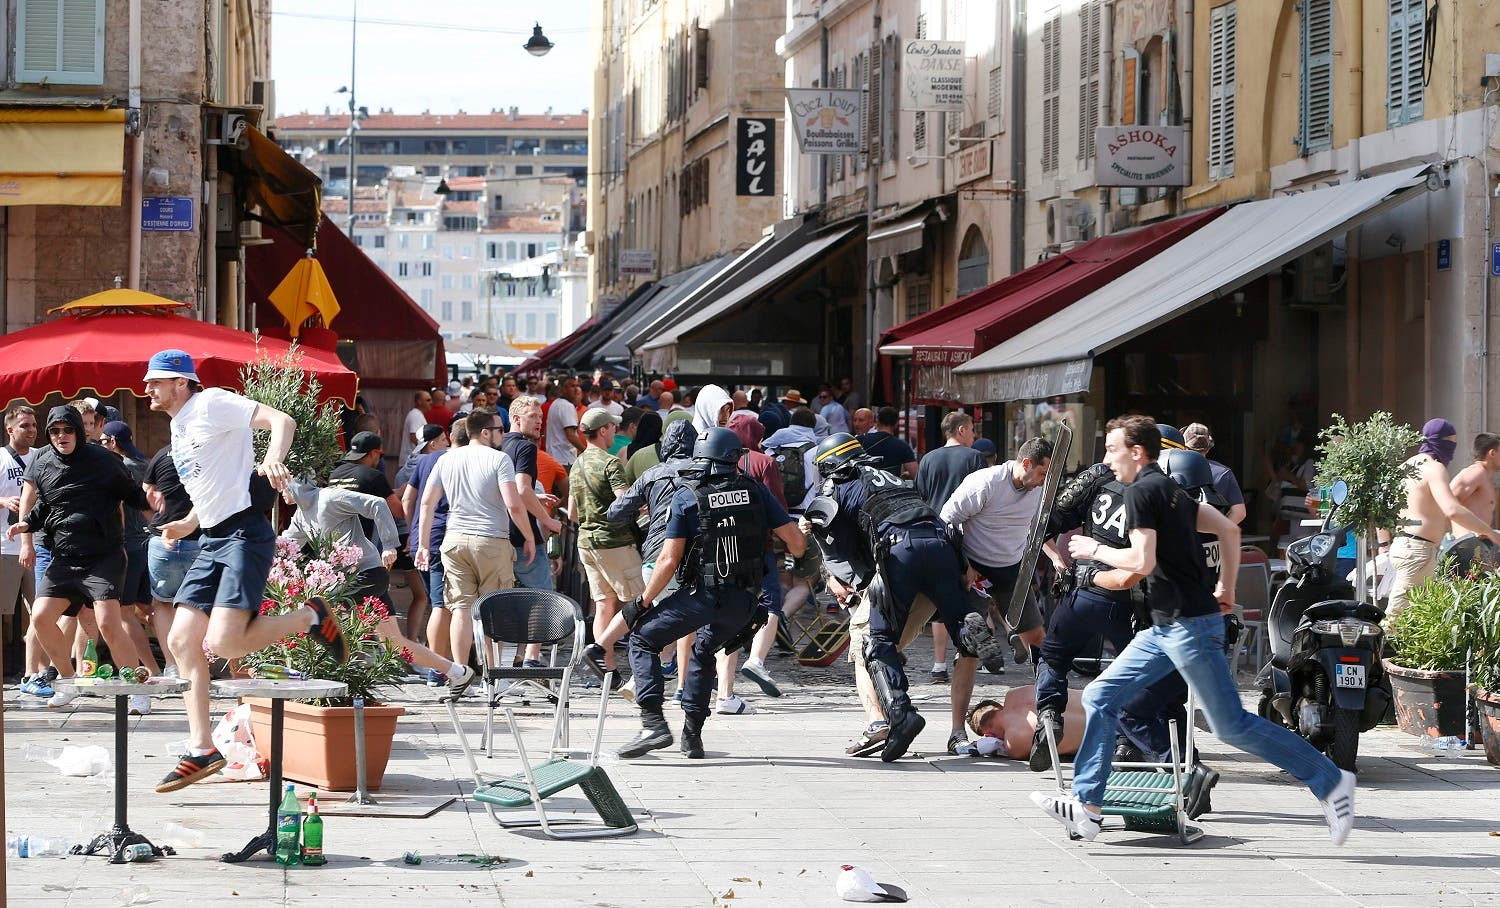 French police officers charge soccer supporters during clashes in downtown Marseille, France, Saturday, June 11, 2016. Riot police have thrown tear gas canisters at soccer fans Saturday in Marseille's Old Port in a third straight day of violence in the city. (AP)